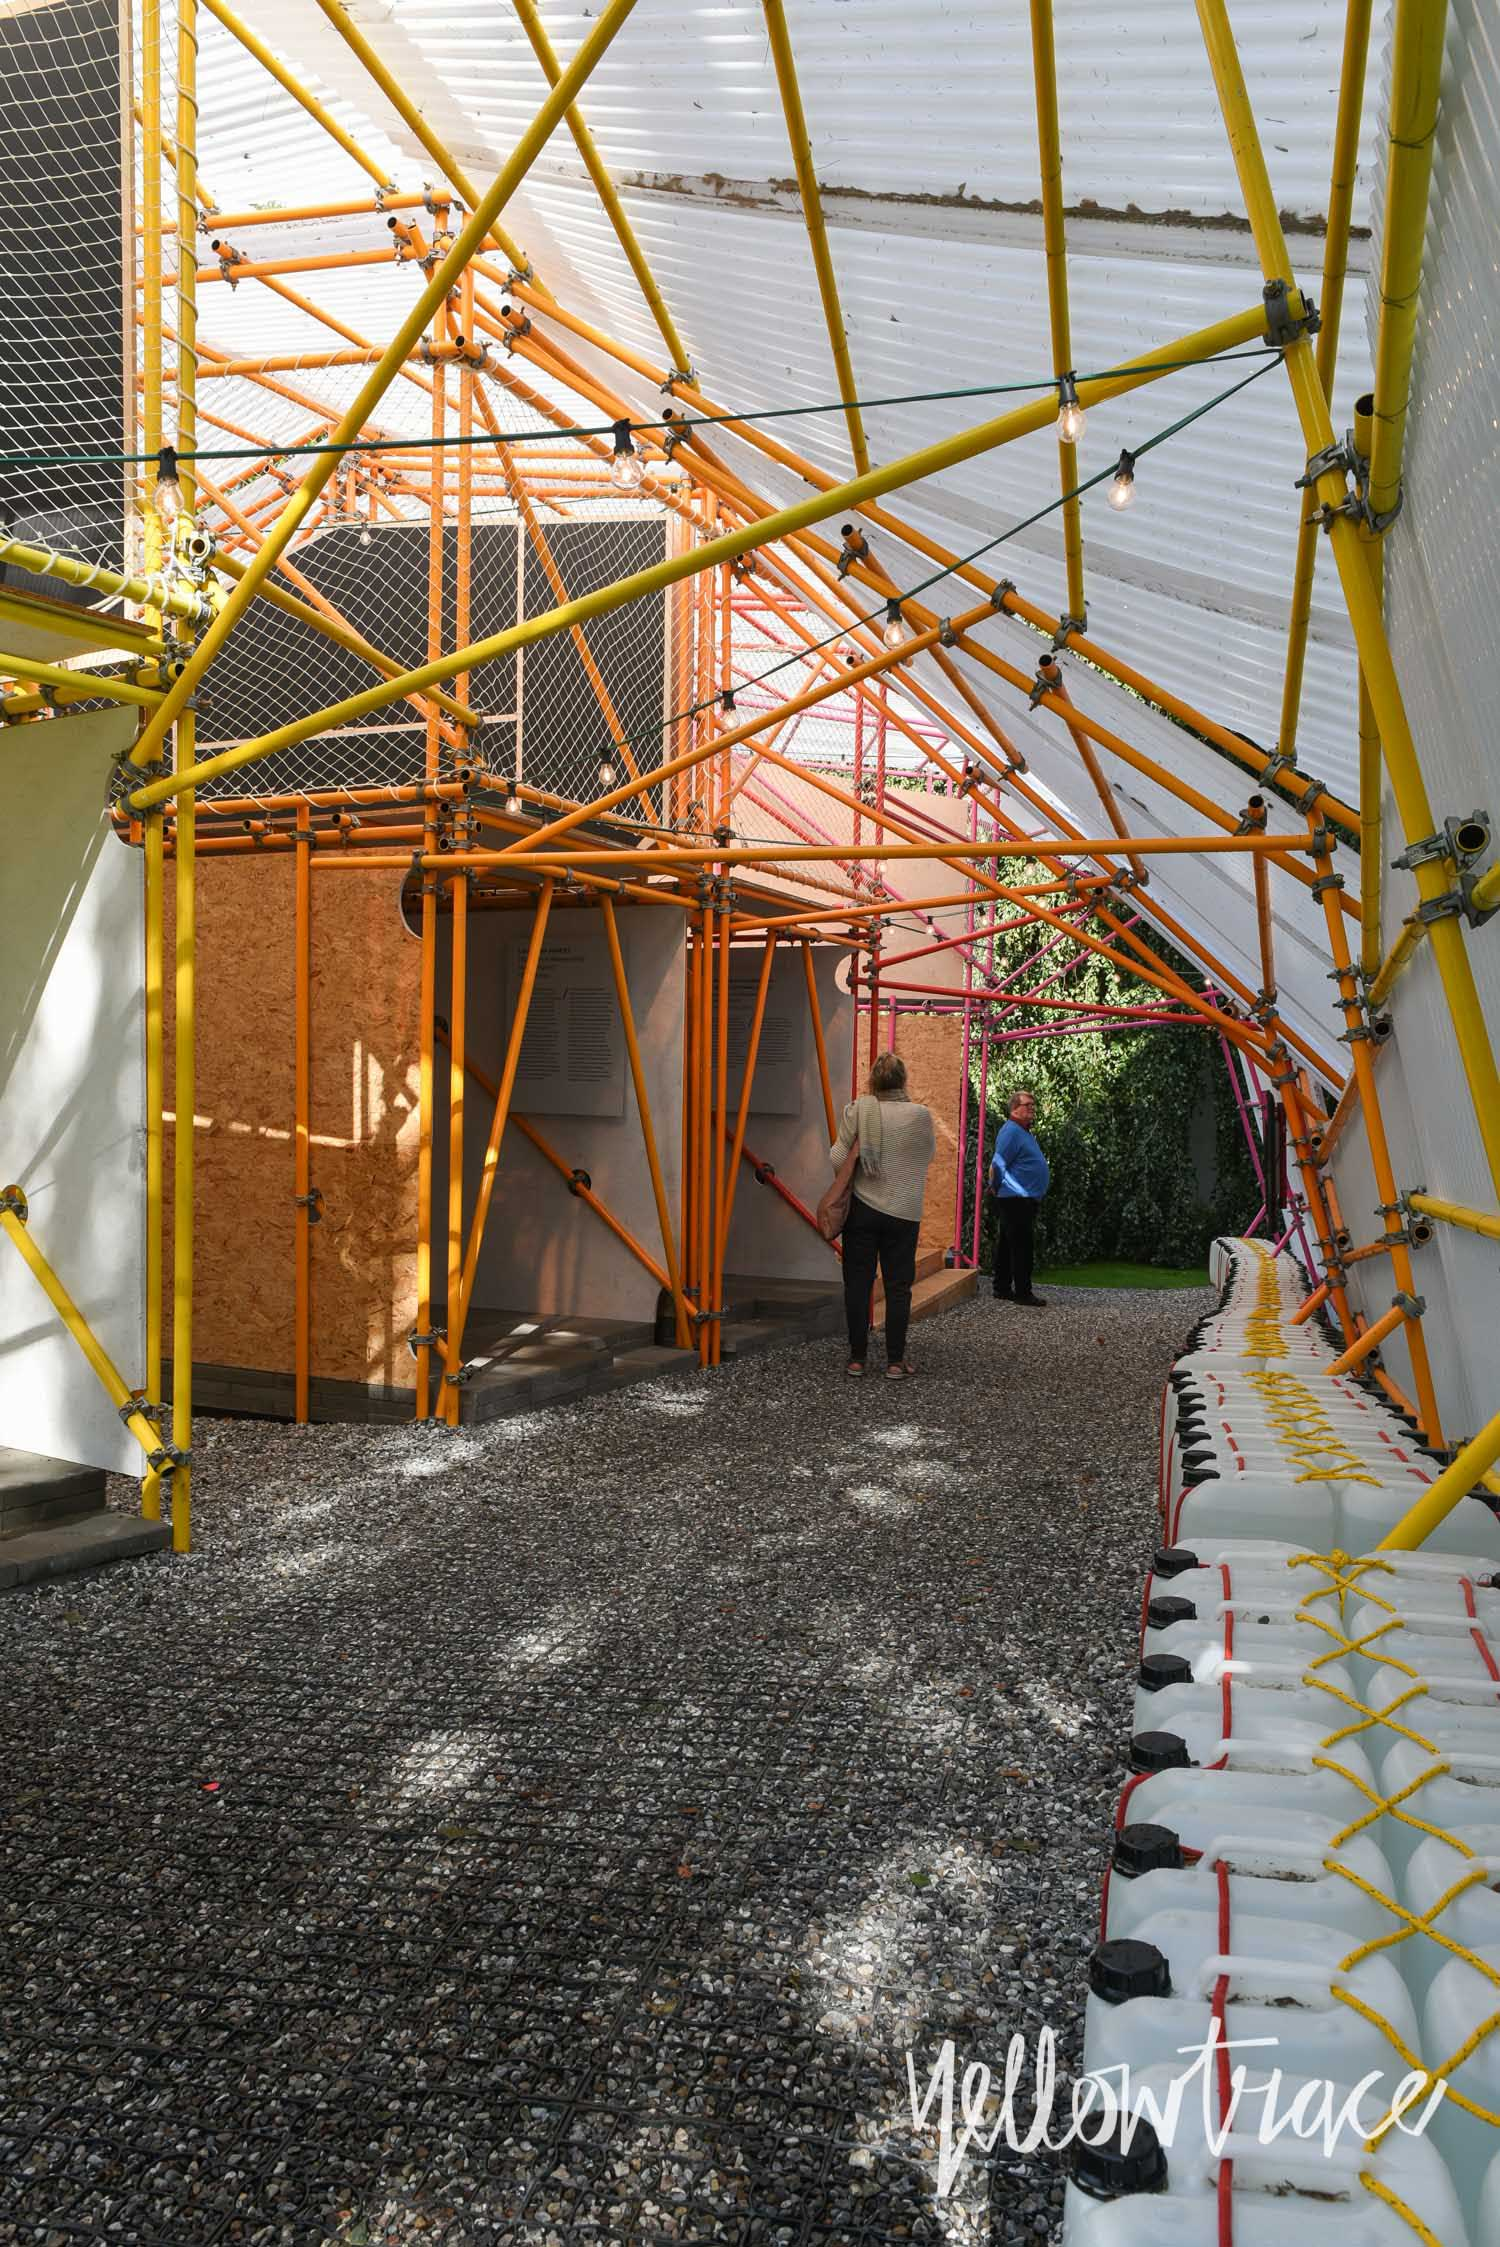 Structure by SelgasCano and helloeverything for African Architecture Exhibition at Louisiana | Yellowtrace